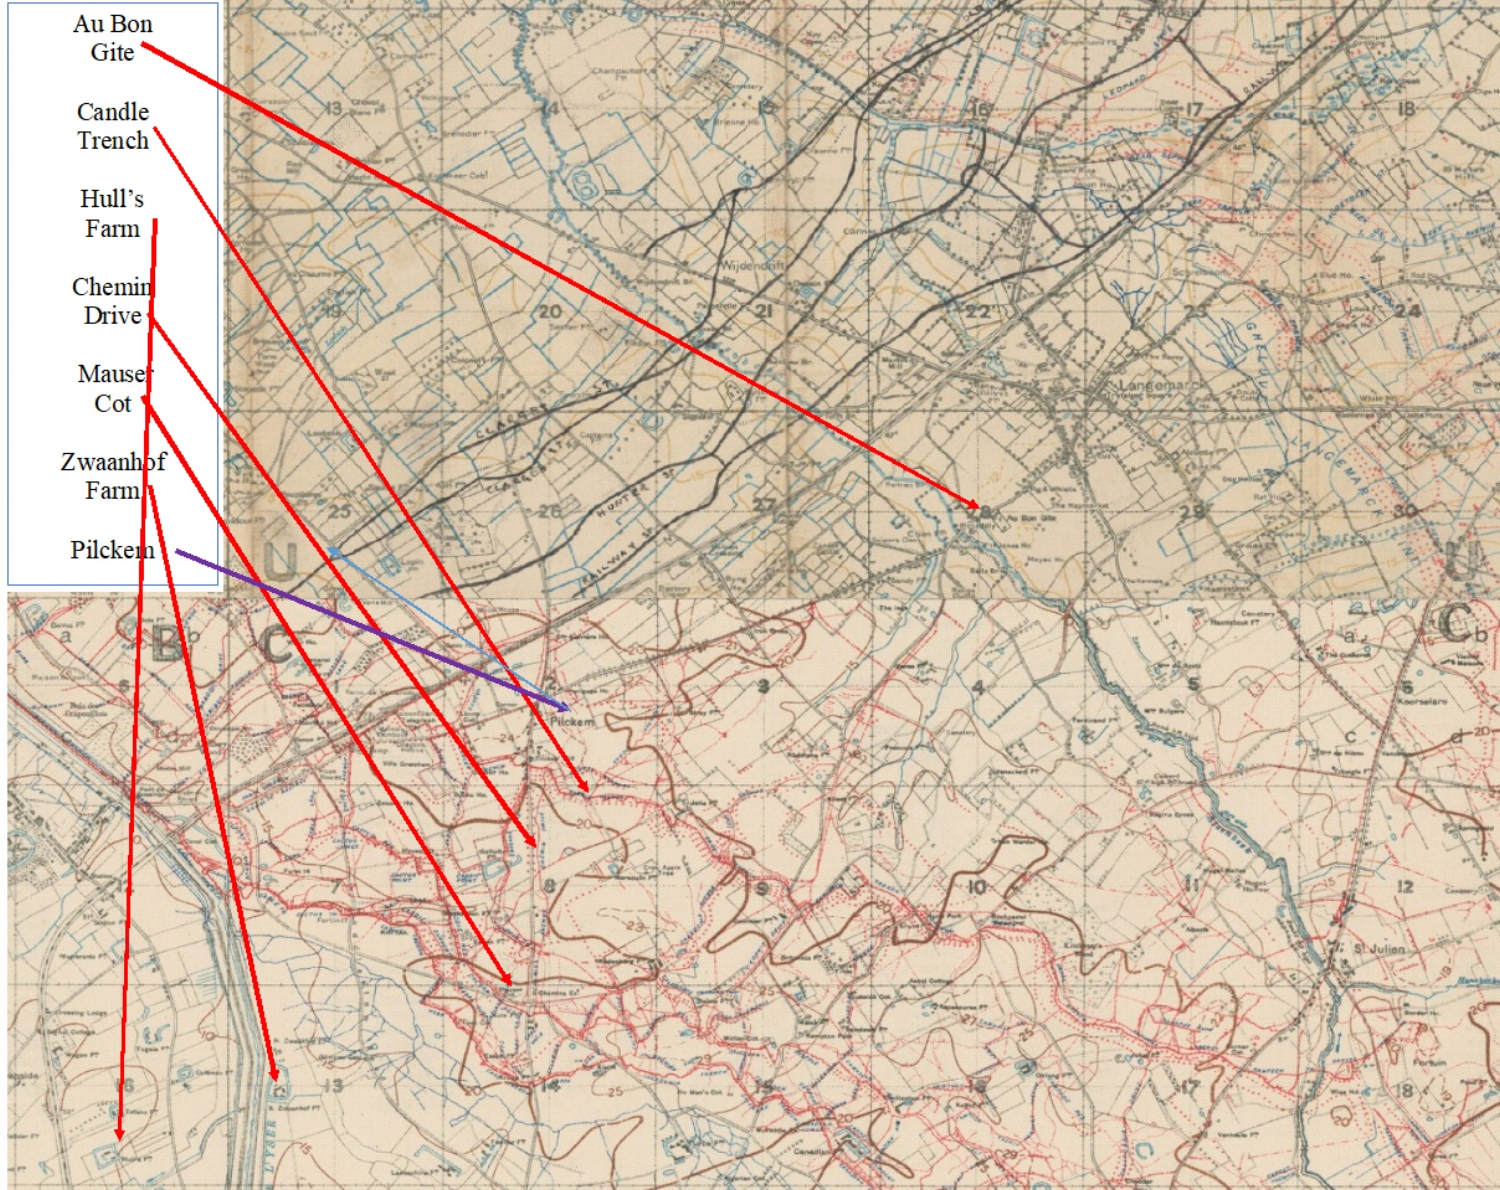 """Combination of extracts from British First World War trench maps, 20 SW Edition 5A (upper part) and 28 NW Edition 6A (lower part), showing the region around Pilckem where the men of the 11th Battalion South Wales Borderers took part in """"The Attack at the River Steenbeck""""."""